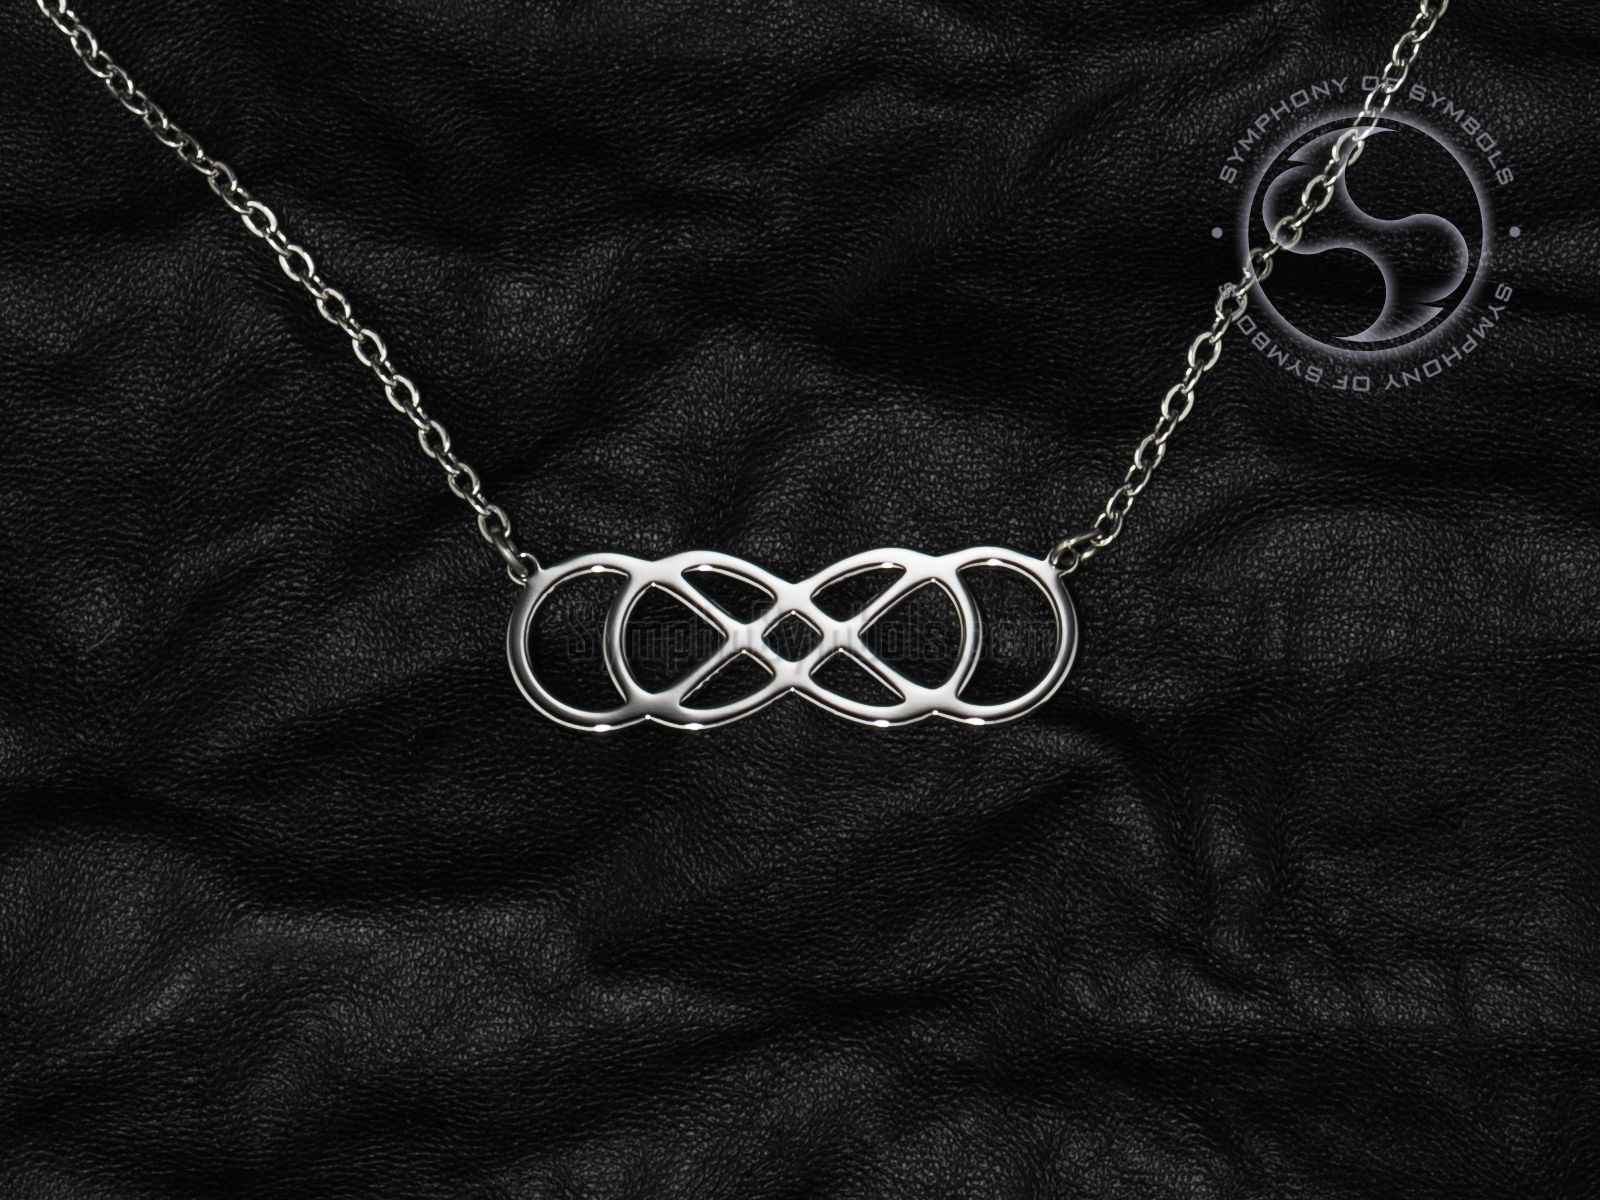 Stainless Steel Infinity Knot Symbol Pendant